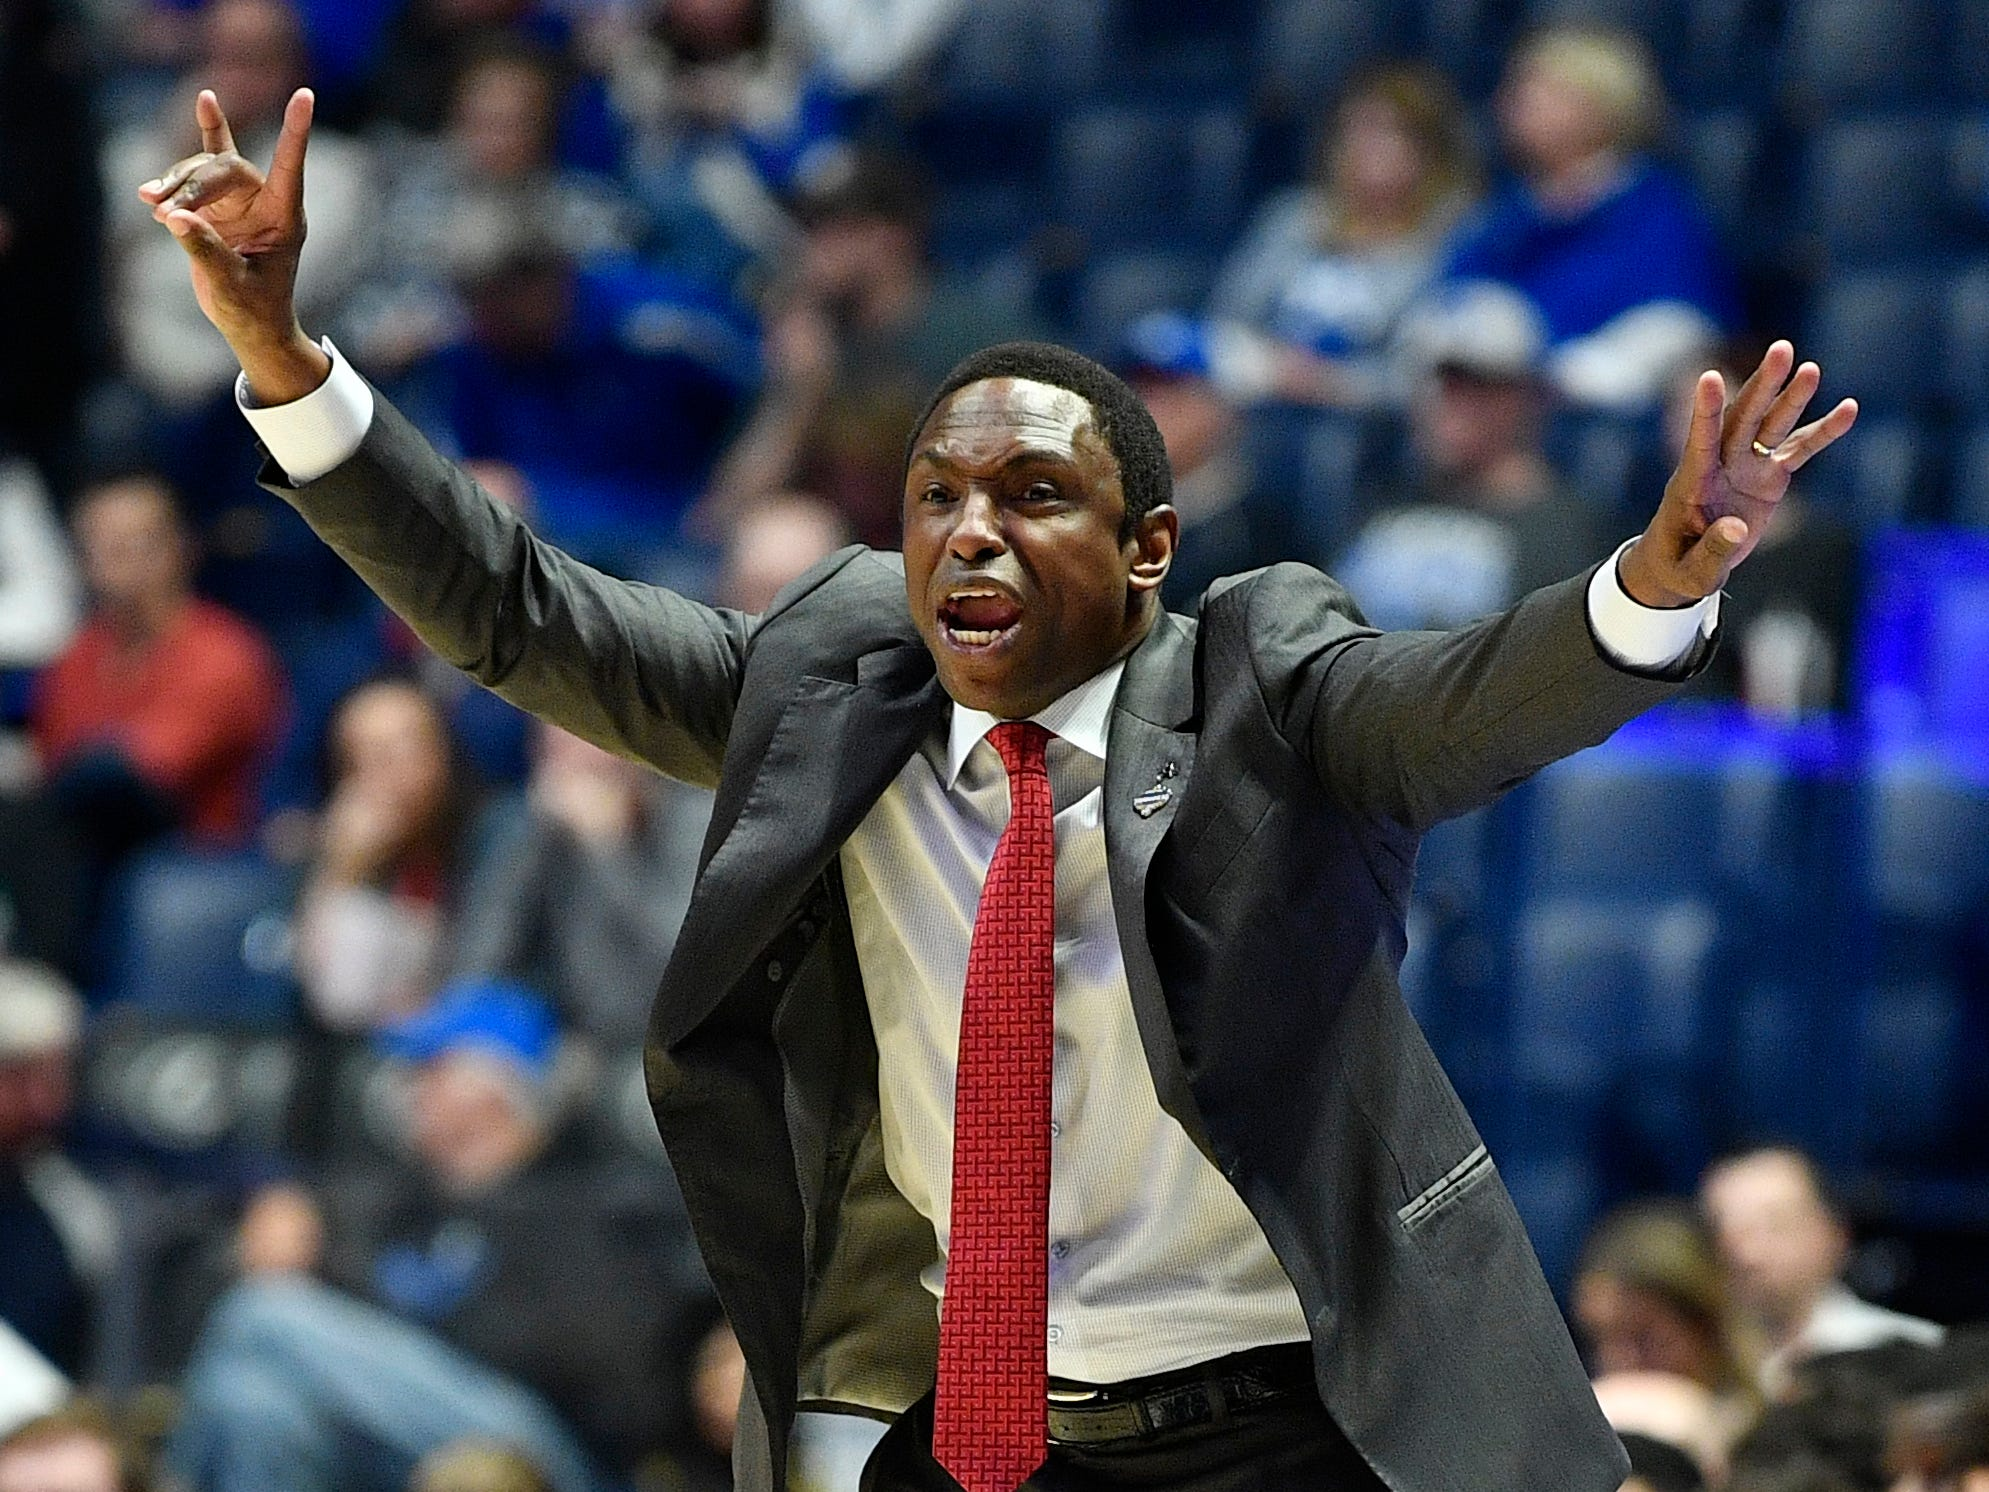 Alabama head coach Avery Johnson gives instructions from the sidelines during the first half of the SEC Men's Basketball Tournament game at Bridgestone Arena in Nashville, Tenn., Thursday, March 14, 2019.